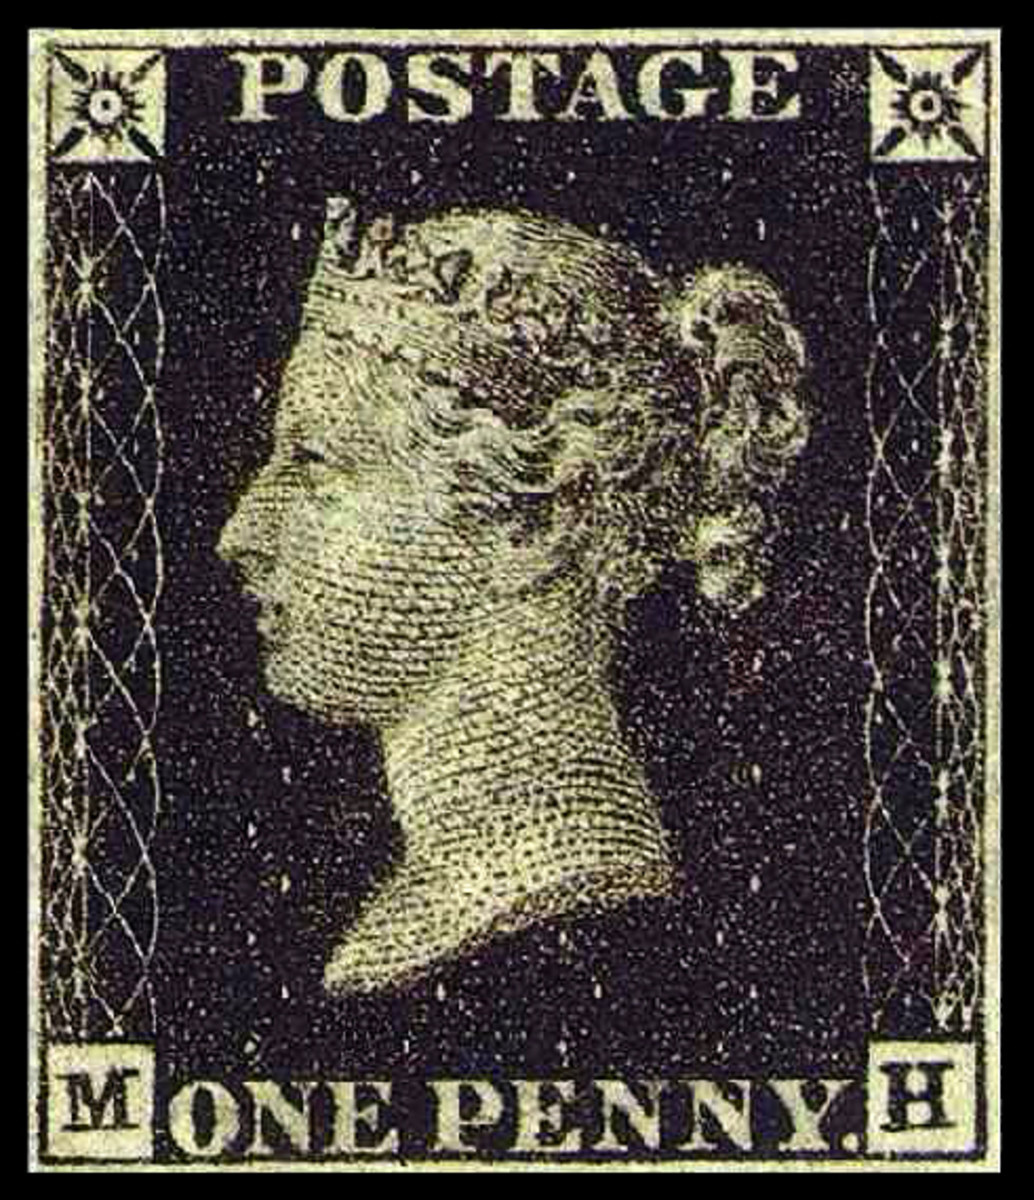 The penny black postage stamp made mail accessible to more people